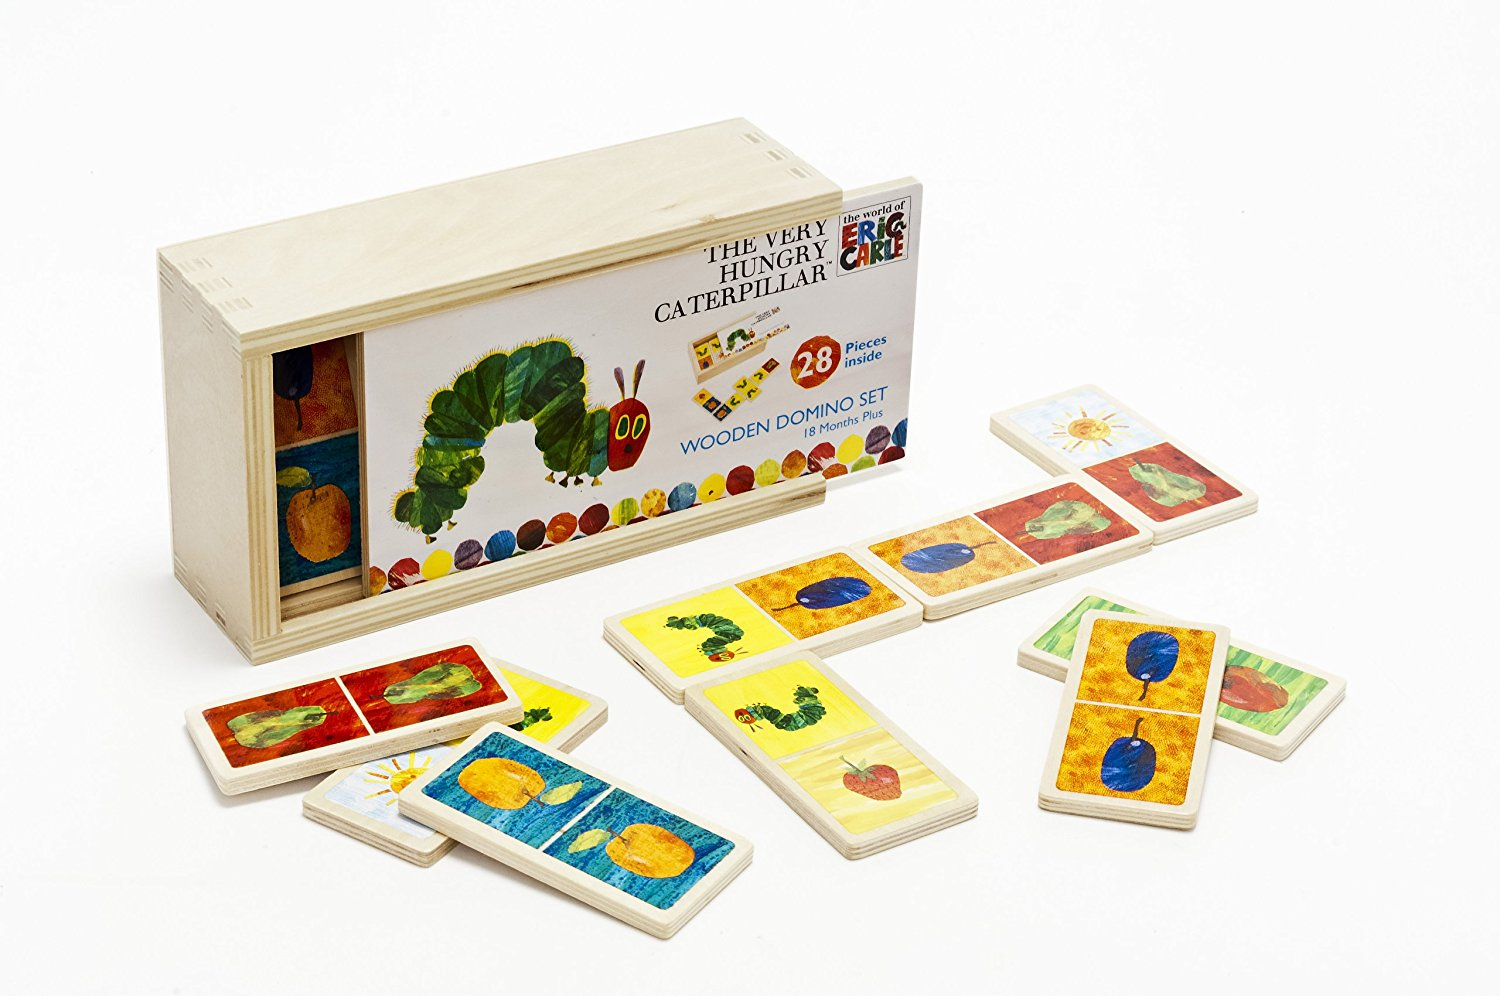 Eric Carle Wooden Dominoes